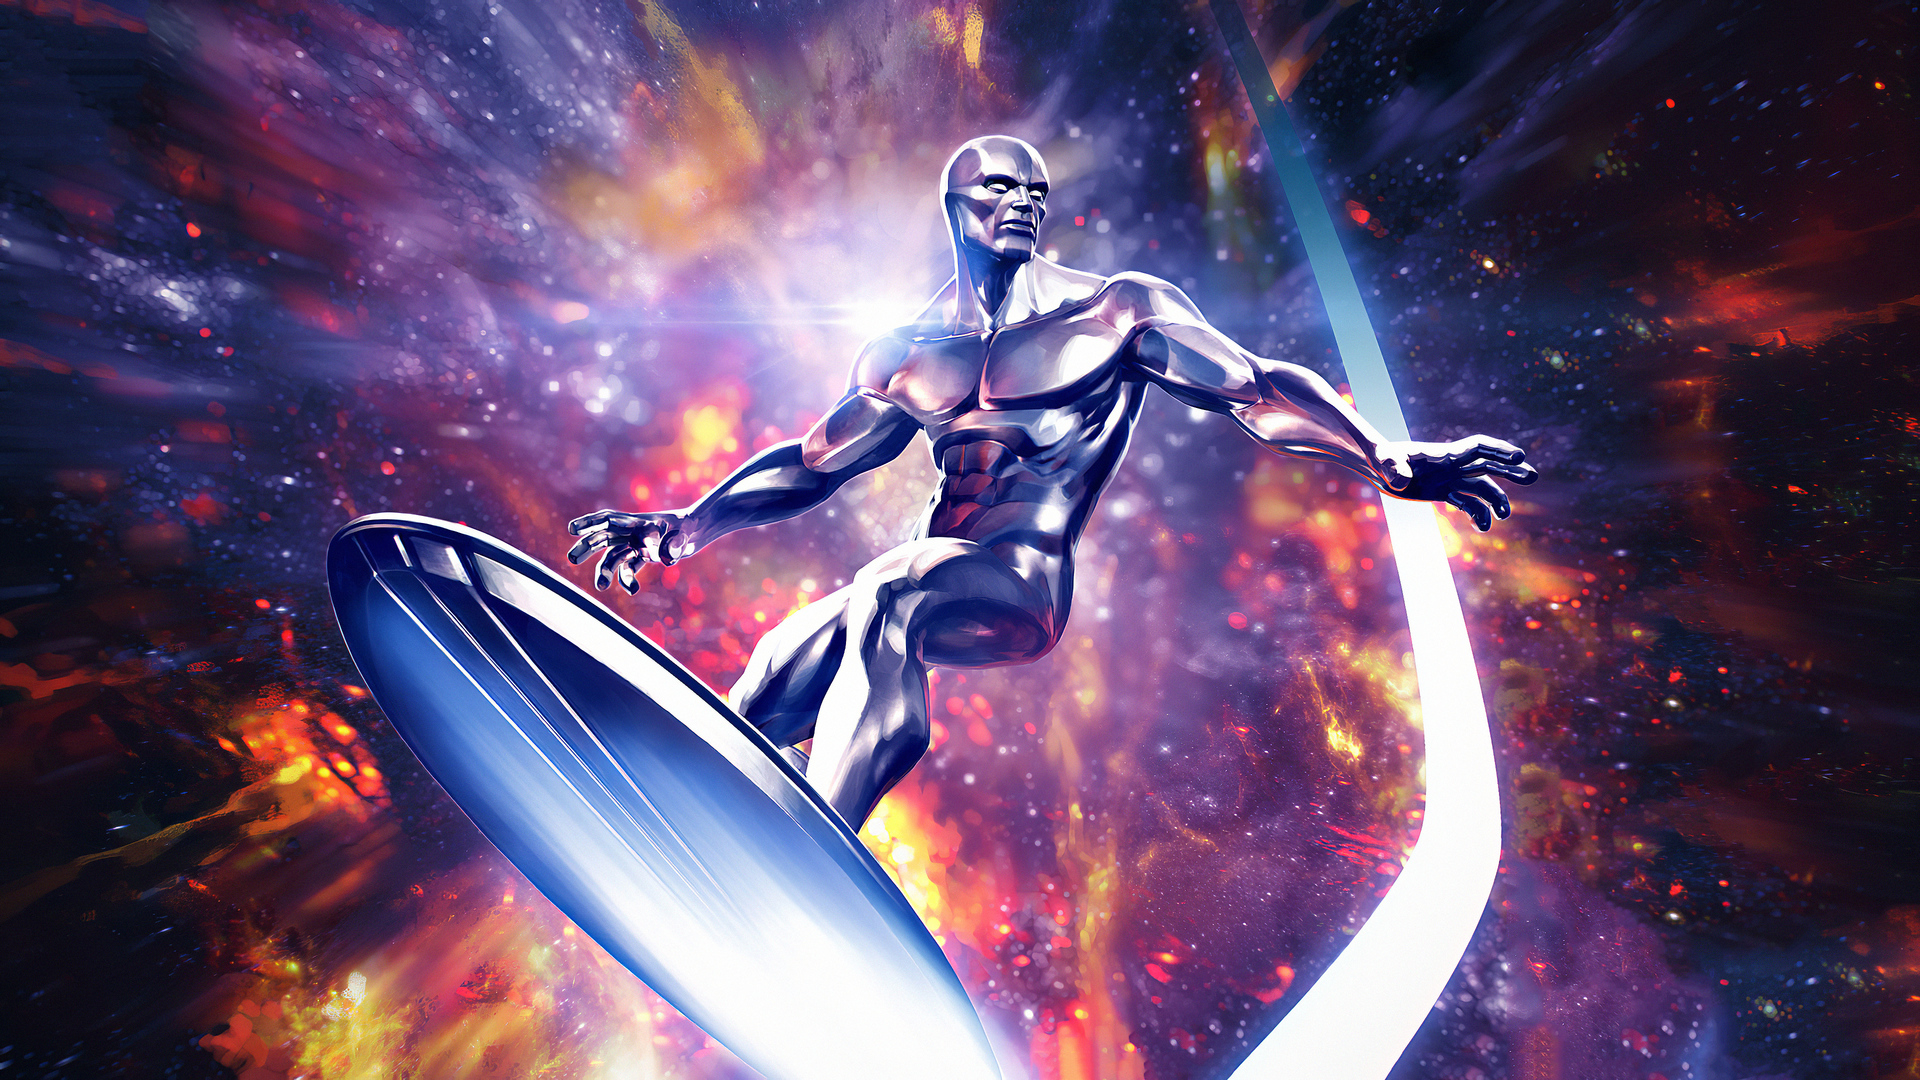 1920x1080 Silver Surfer Marvel Contest Of Champions Laptop Full Hd